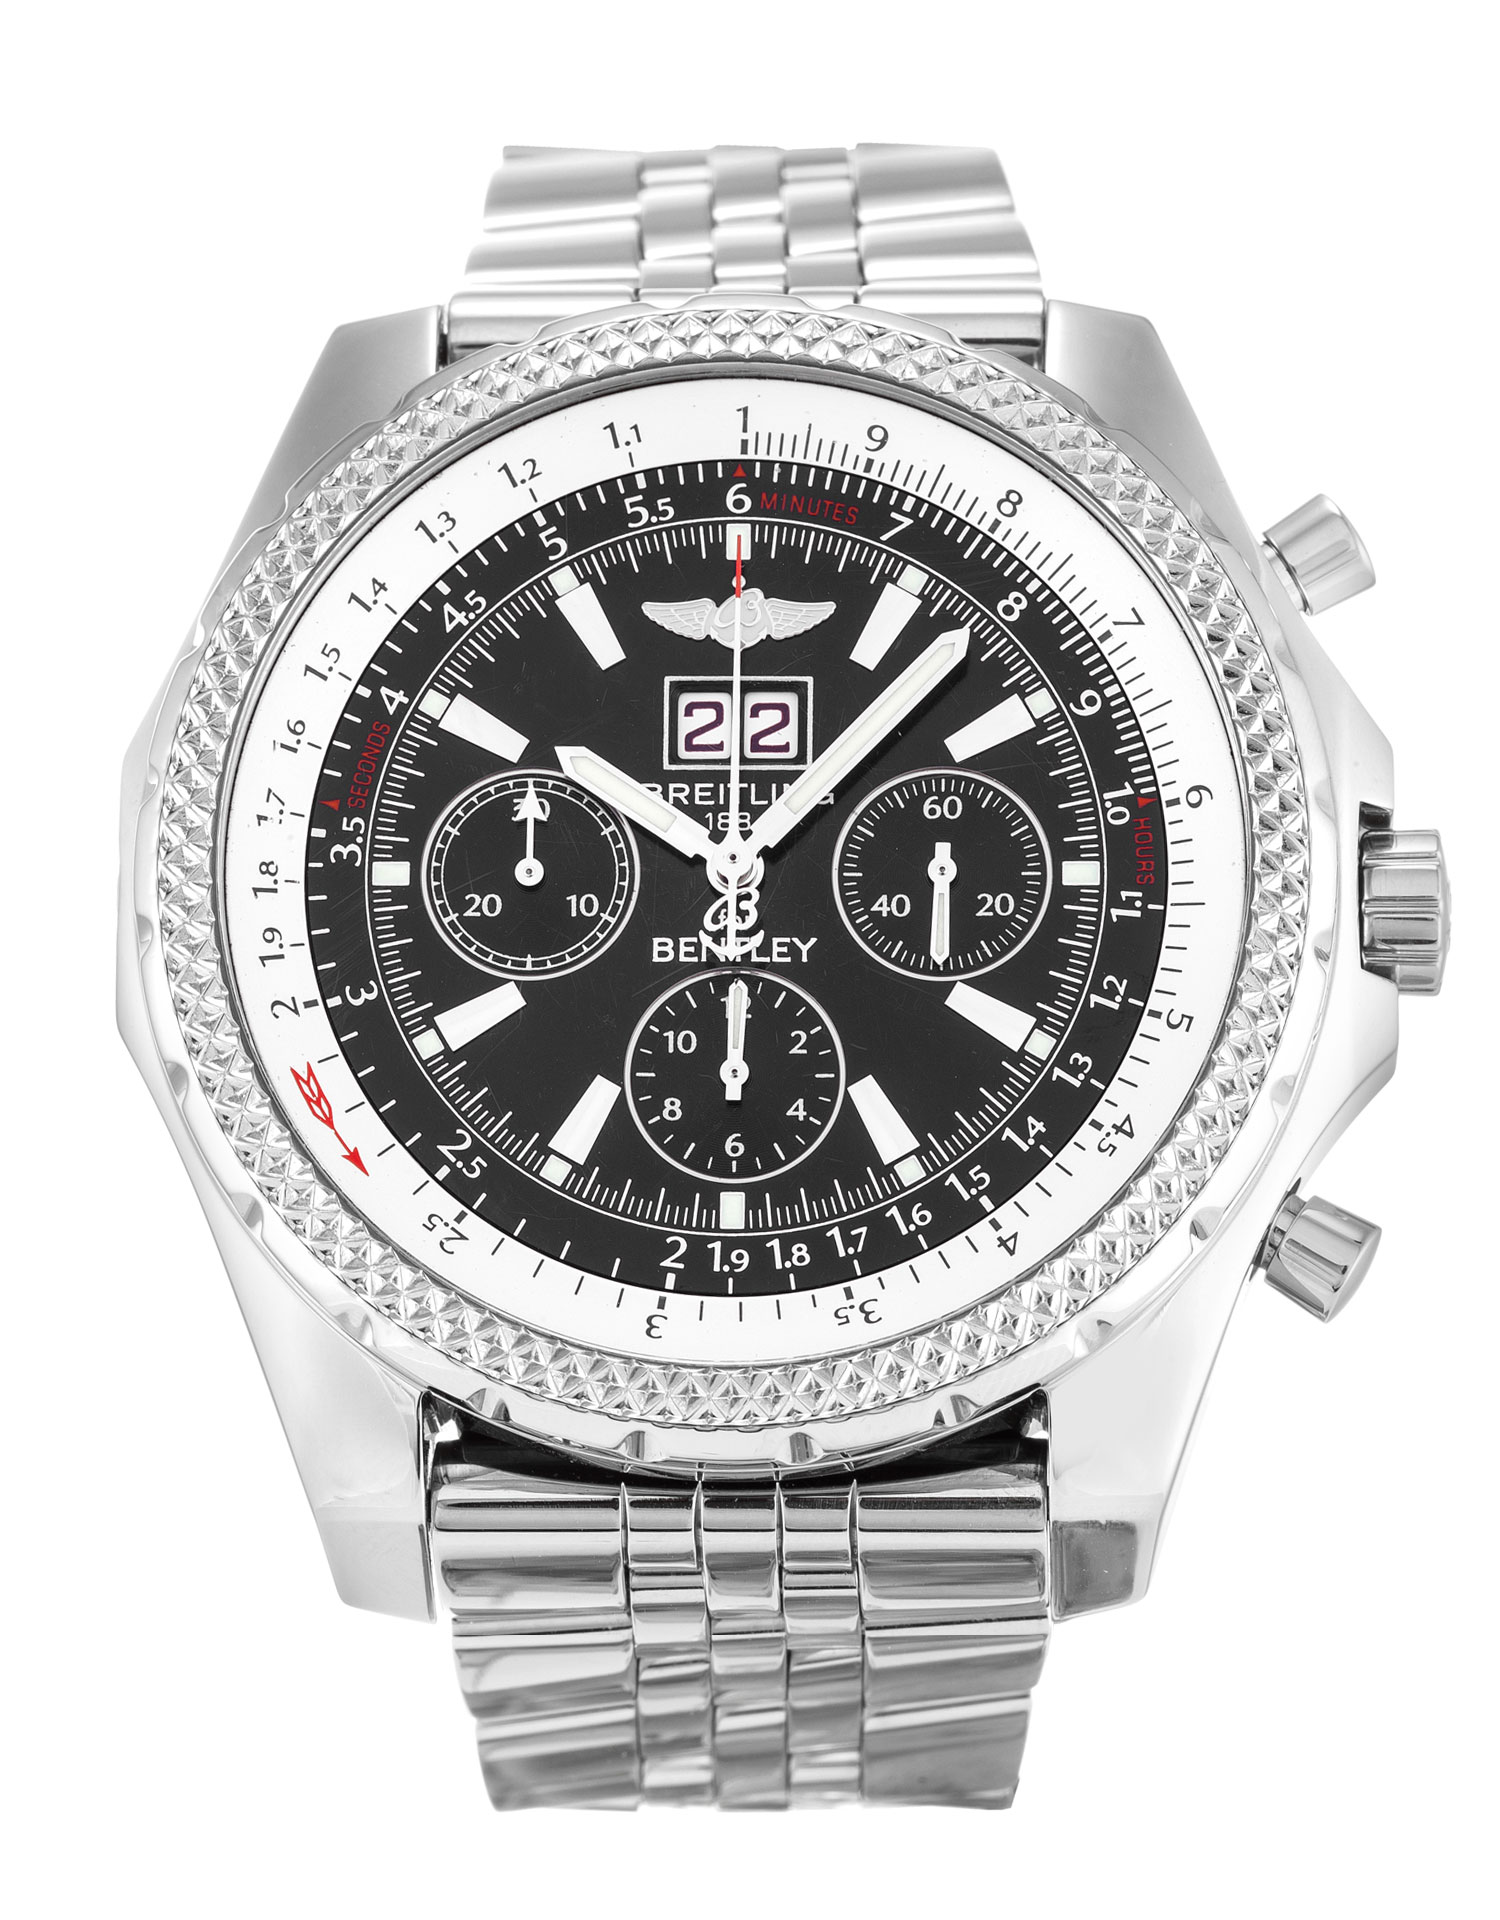 Breitling Bentley 6 75 A44362 Watch Watchfinder Co